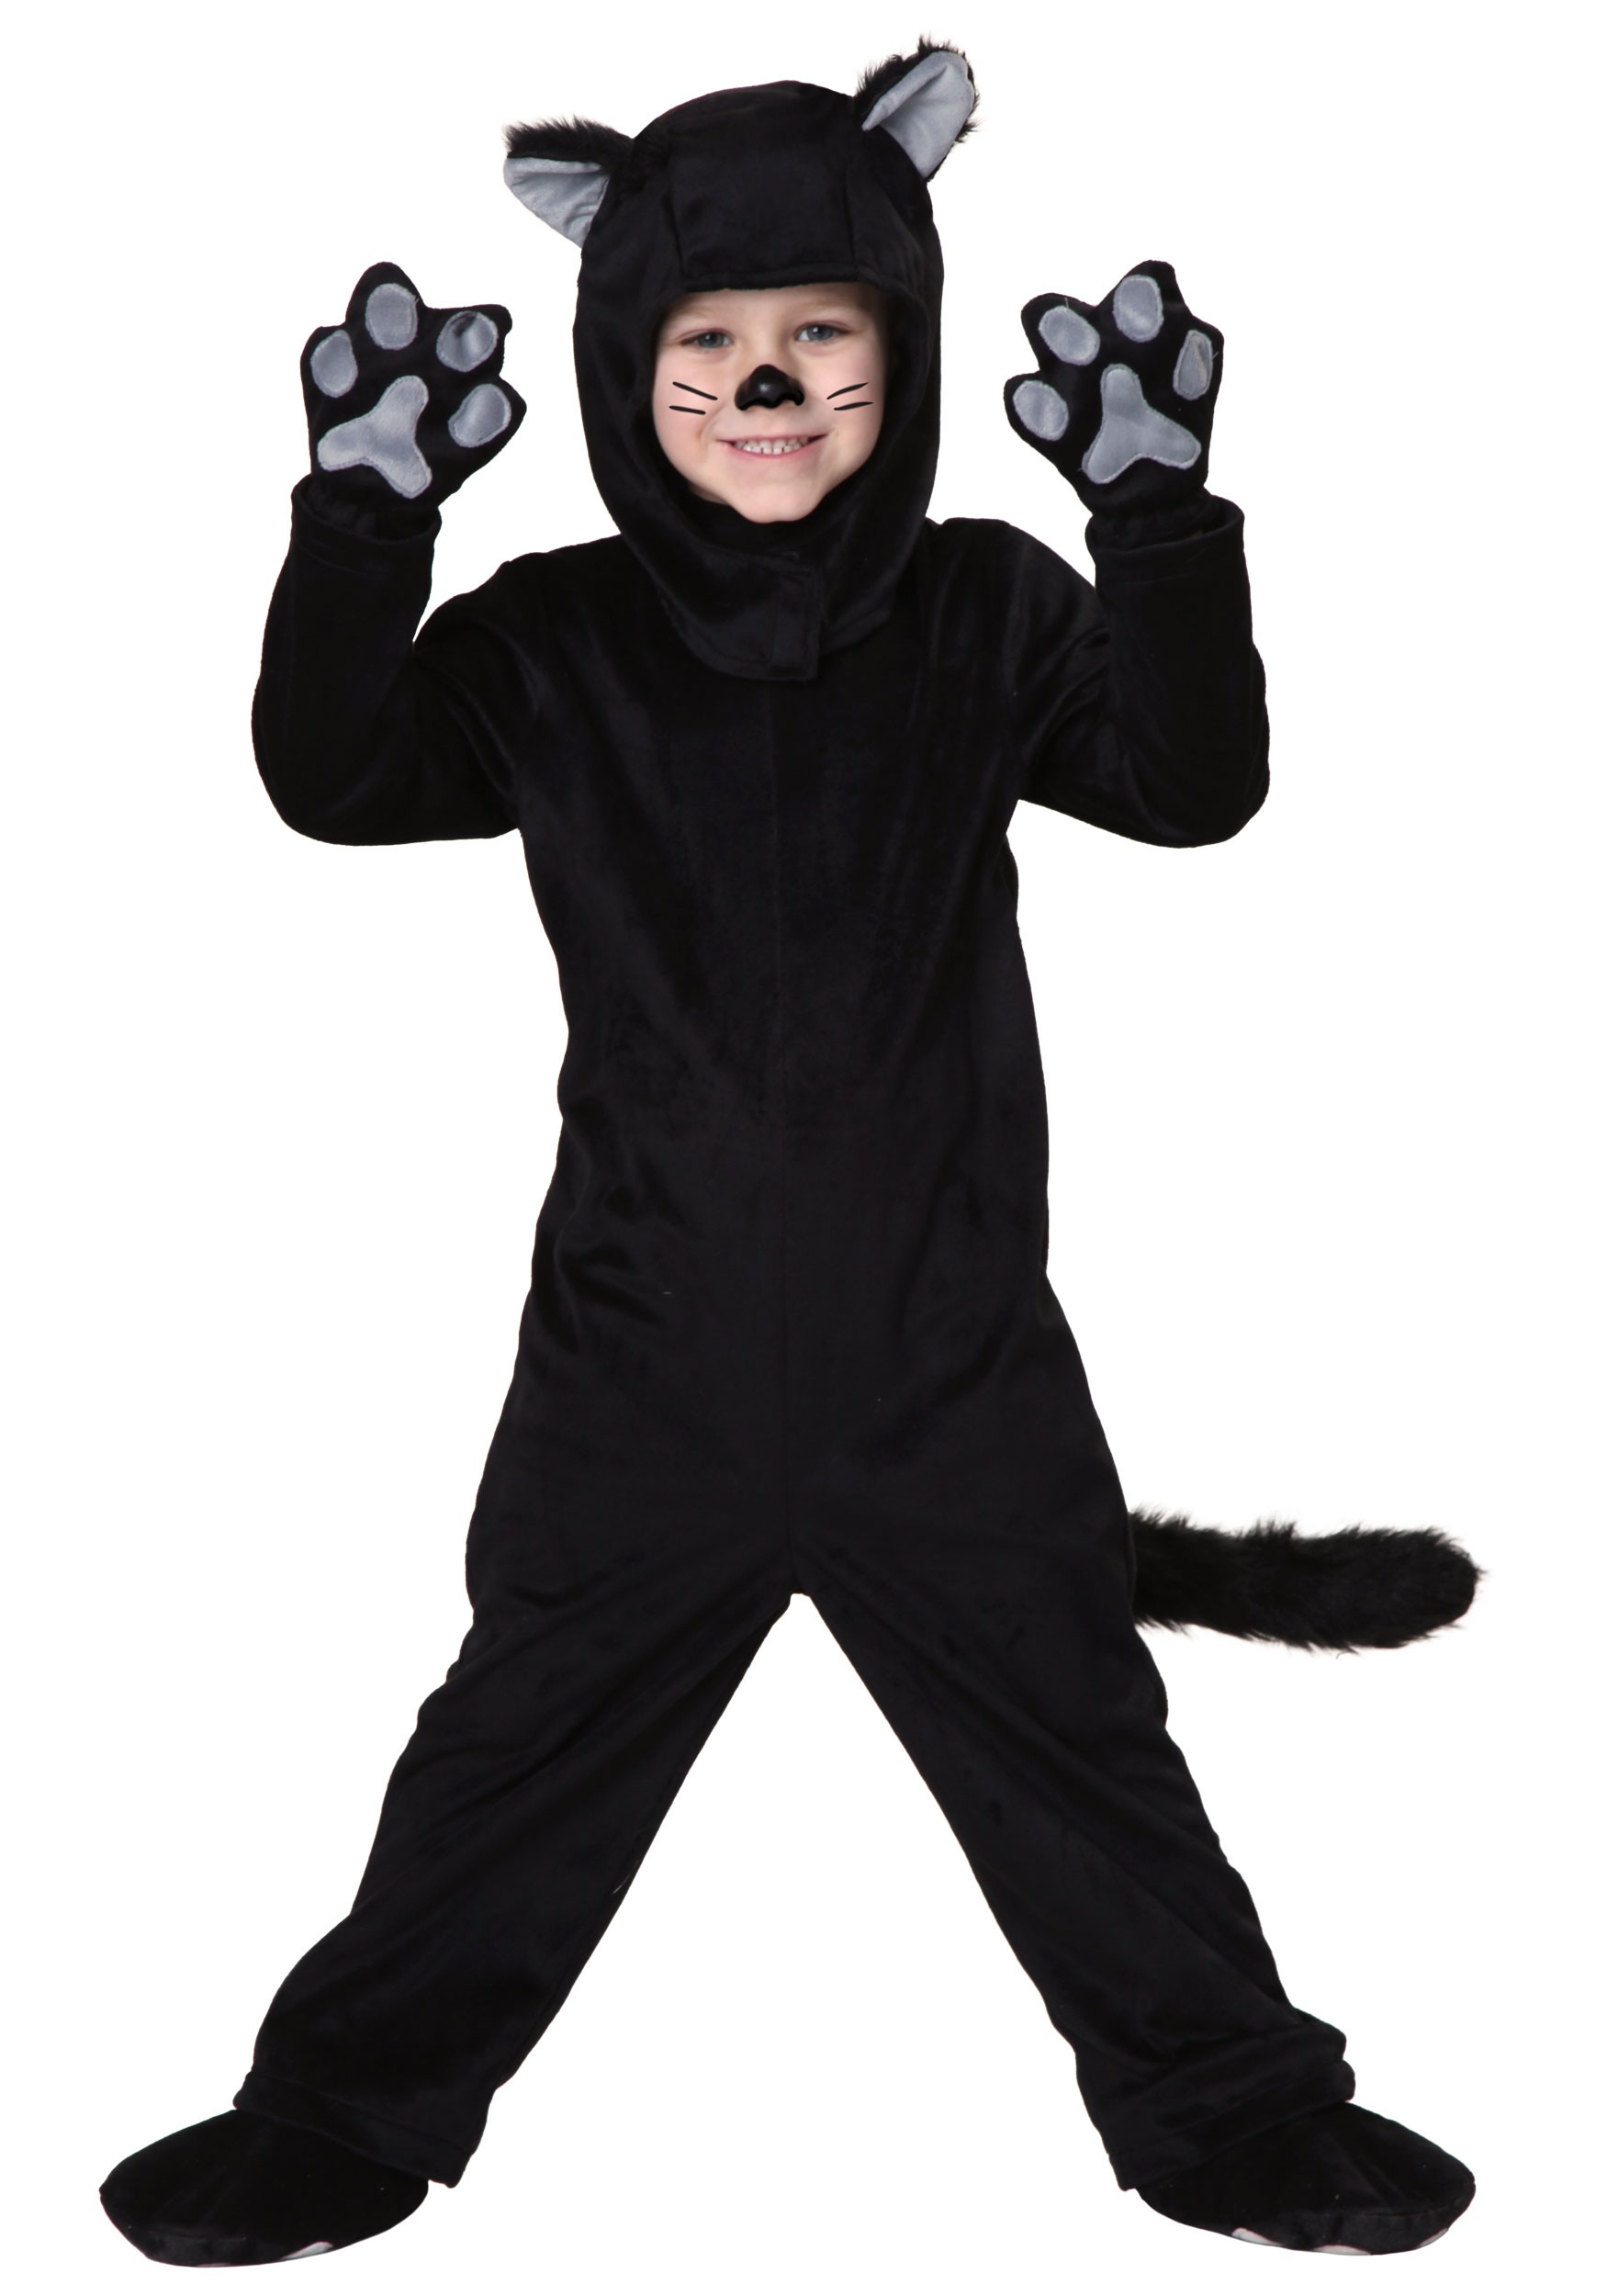 sc 1 st  Findema & Toddler Little Black Cat Costume - Halloween Costume Ideas 2016